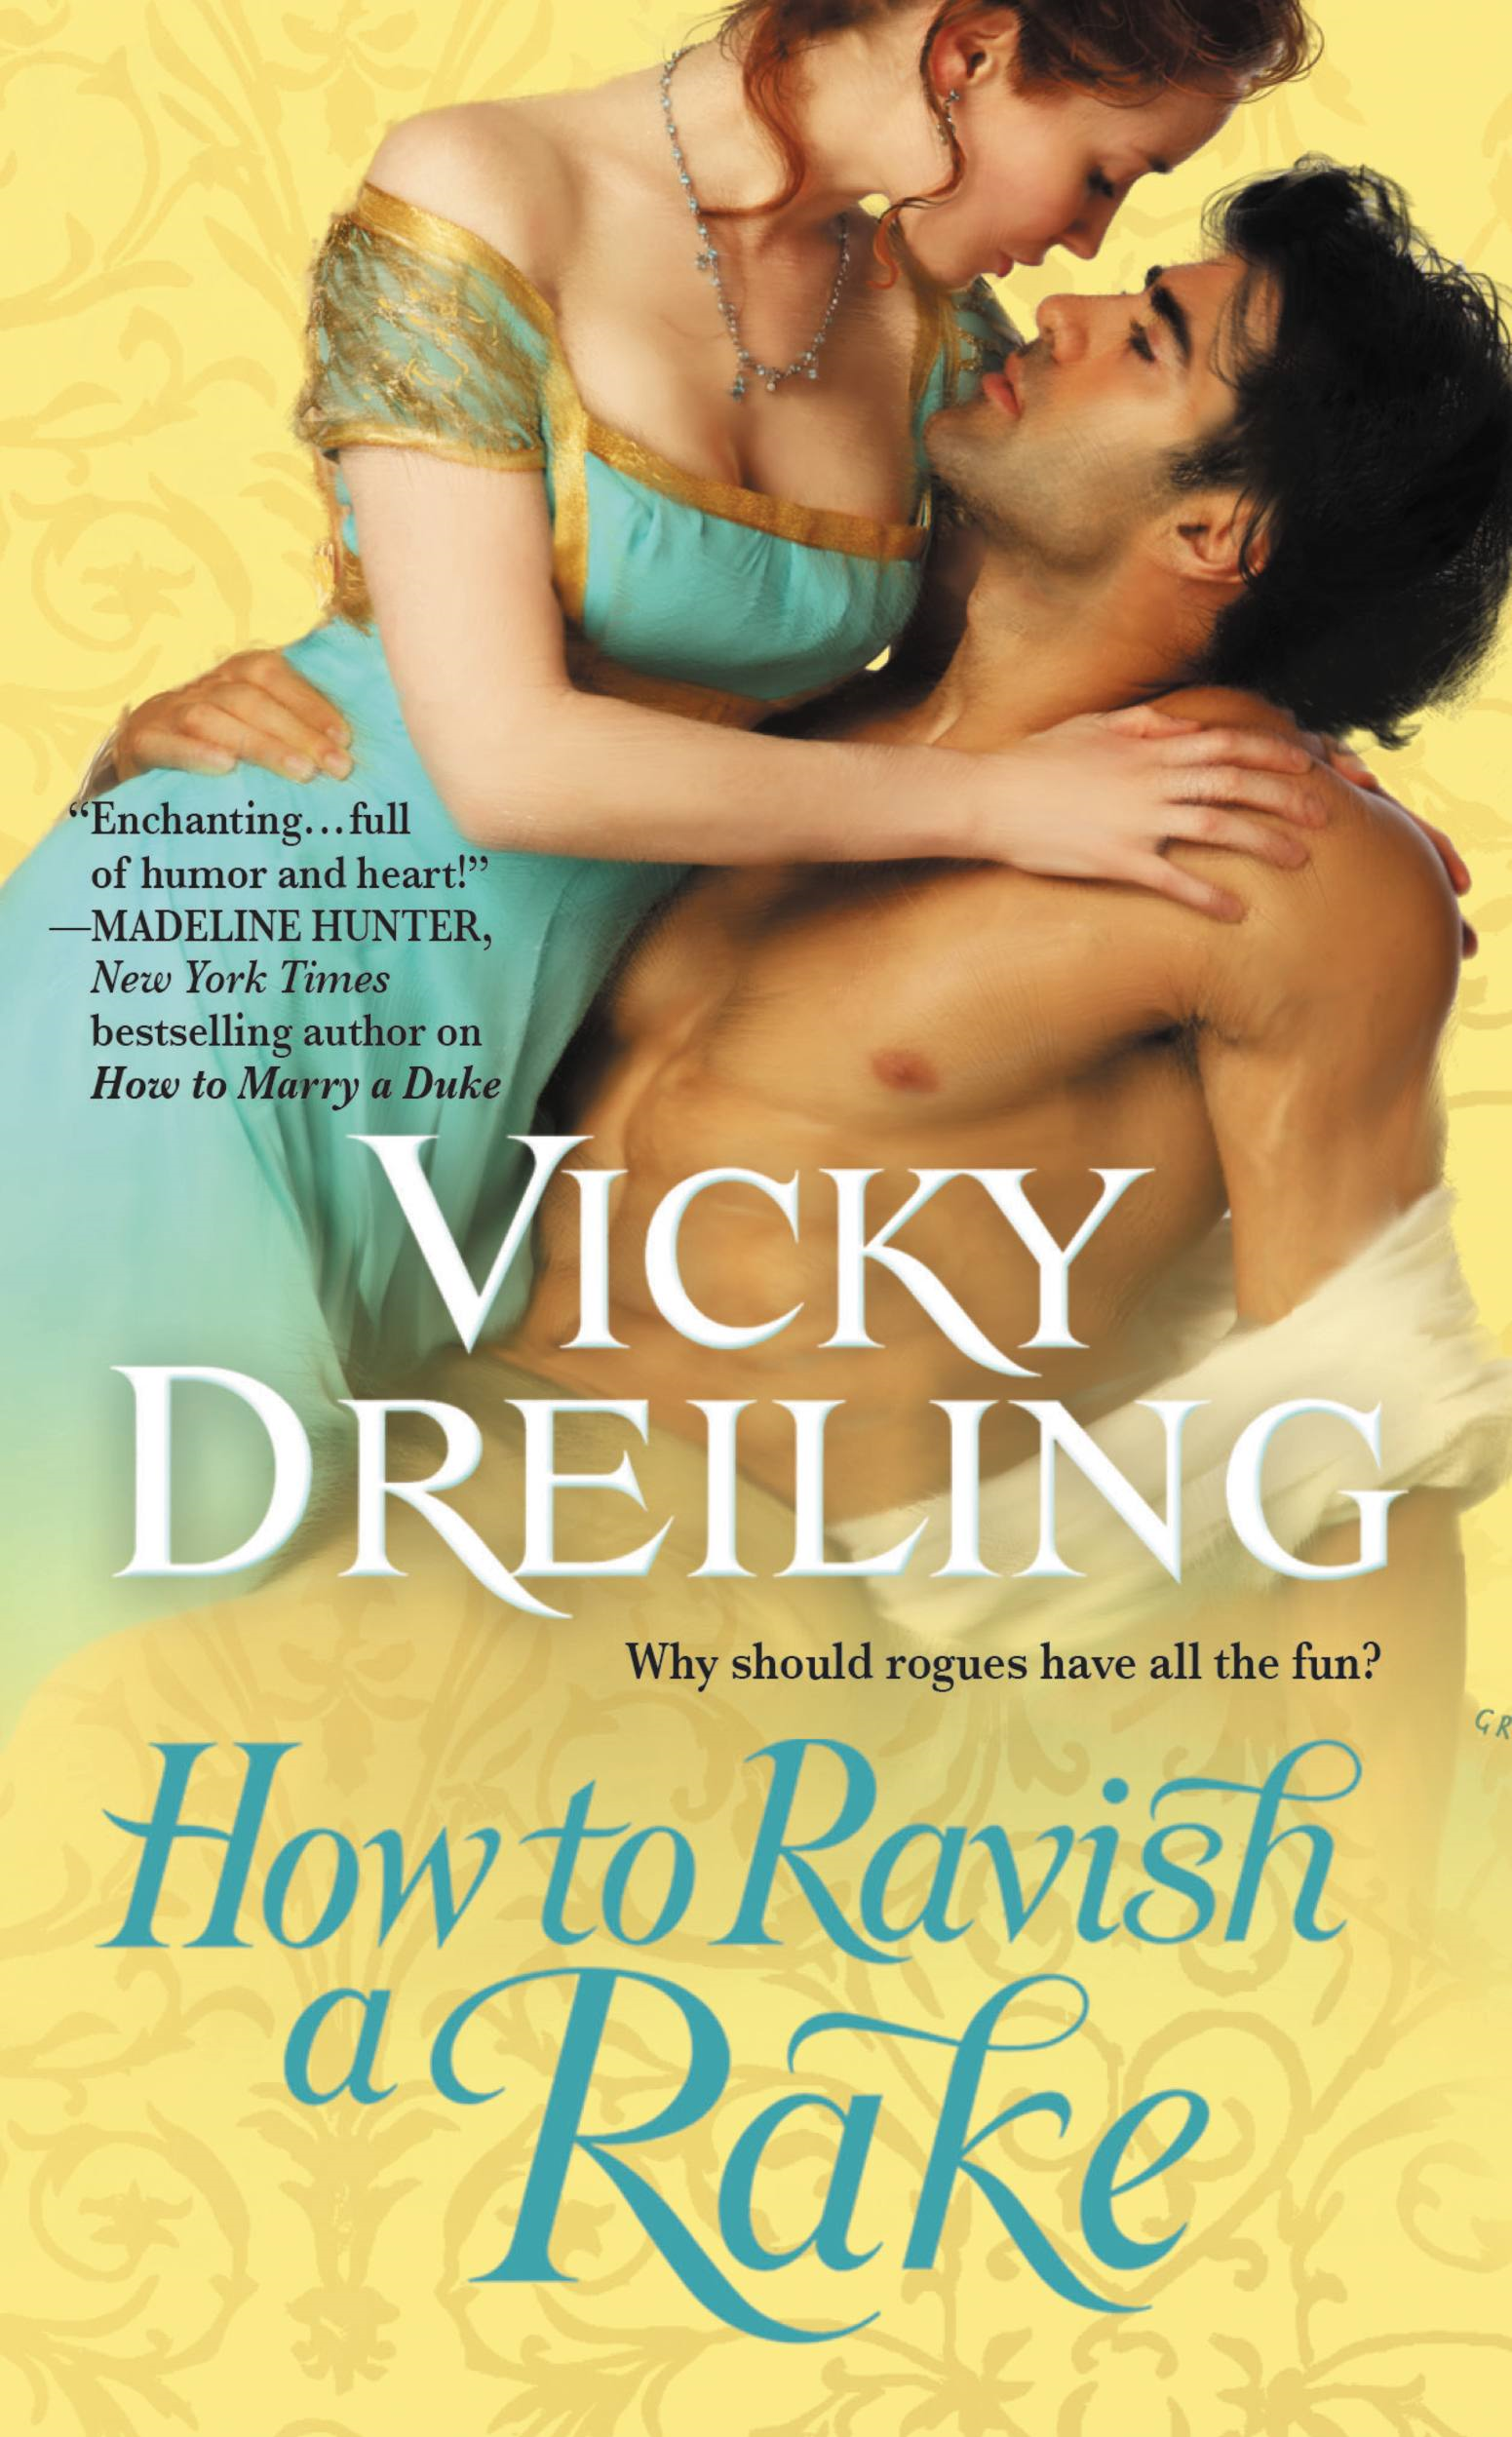 How to Ravish a Rake By: Vicky Dreiling